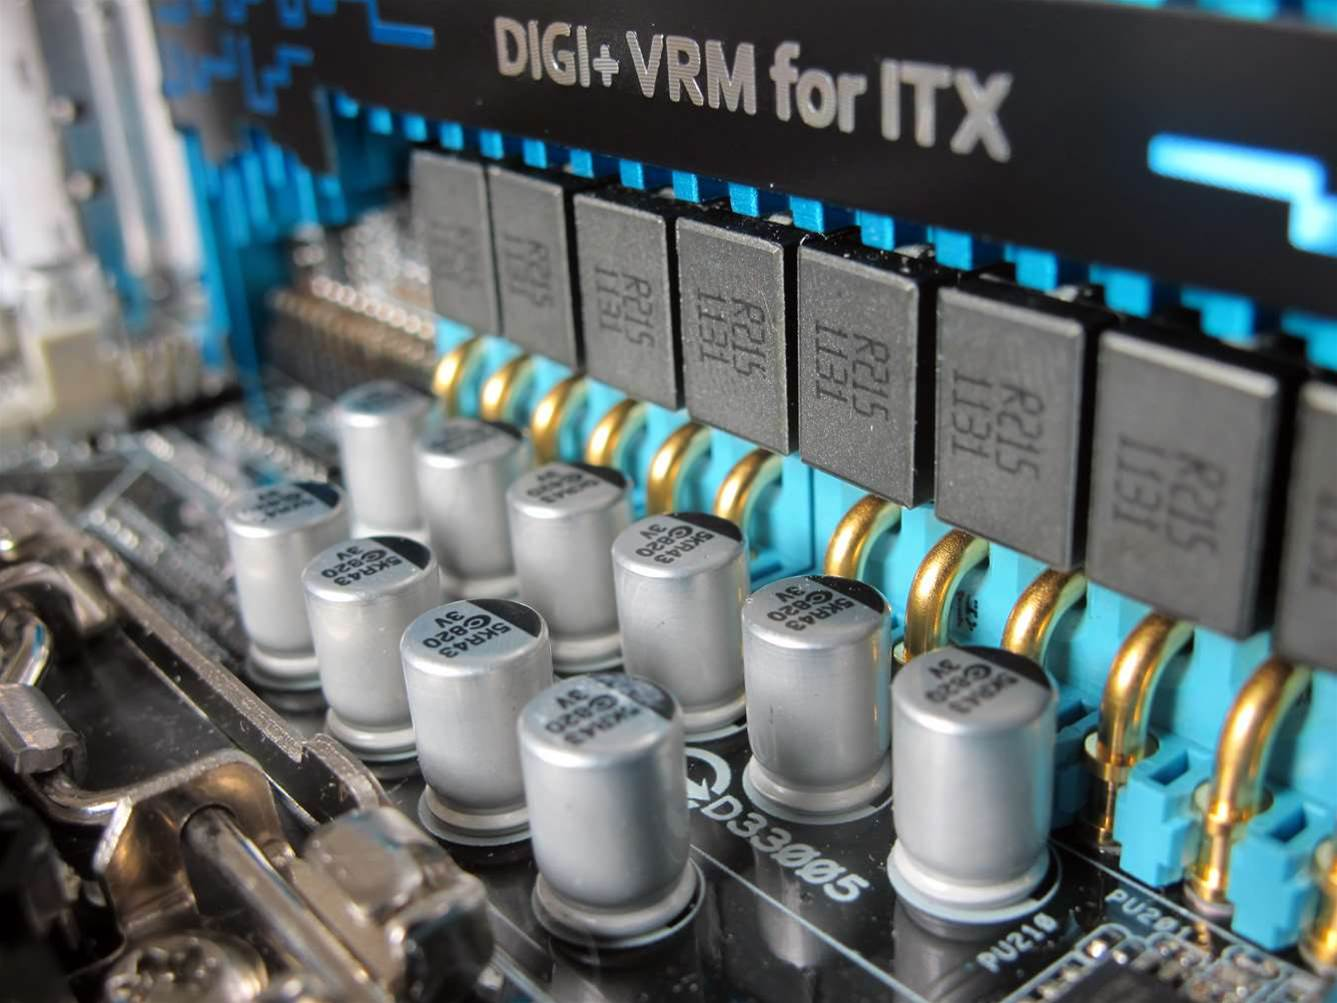 With more and more chipset features moving onto the CPU, Mini-ITX is increasingly viable as a fully featured motherboard solution.